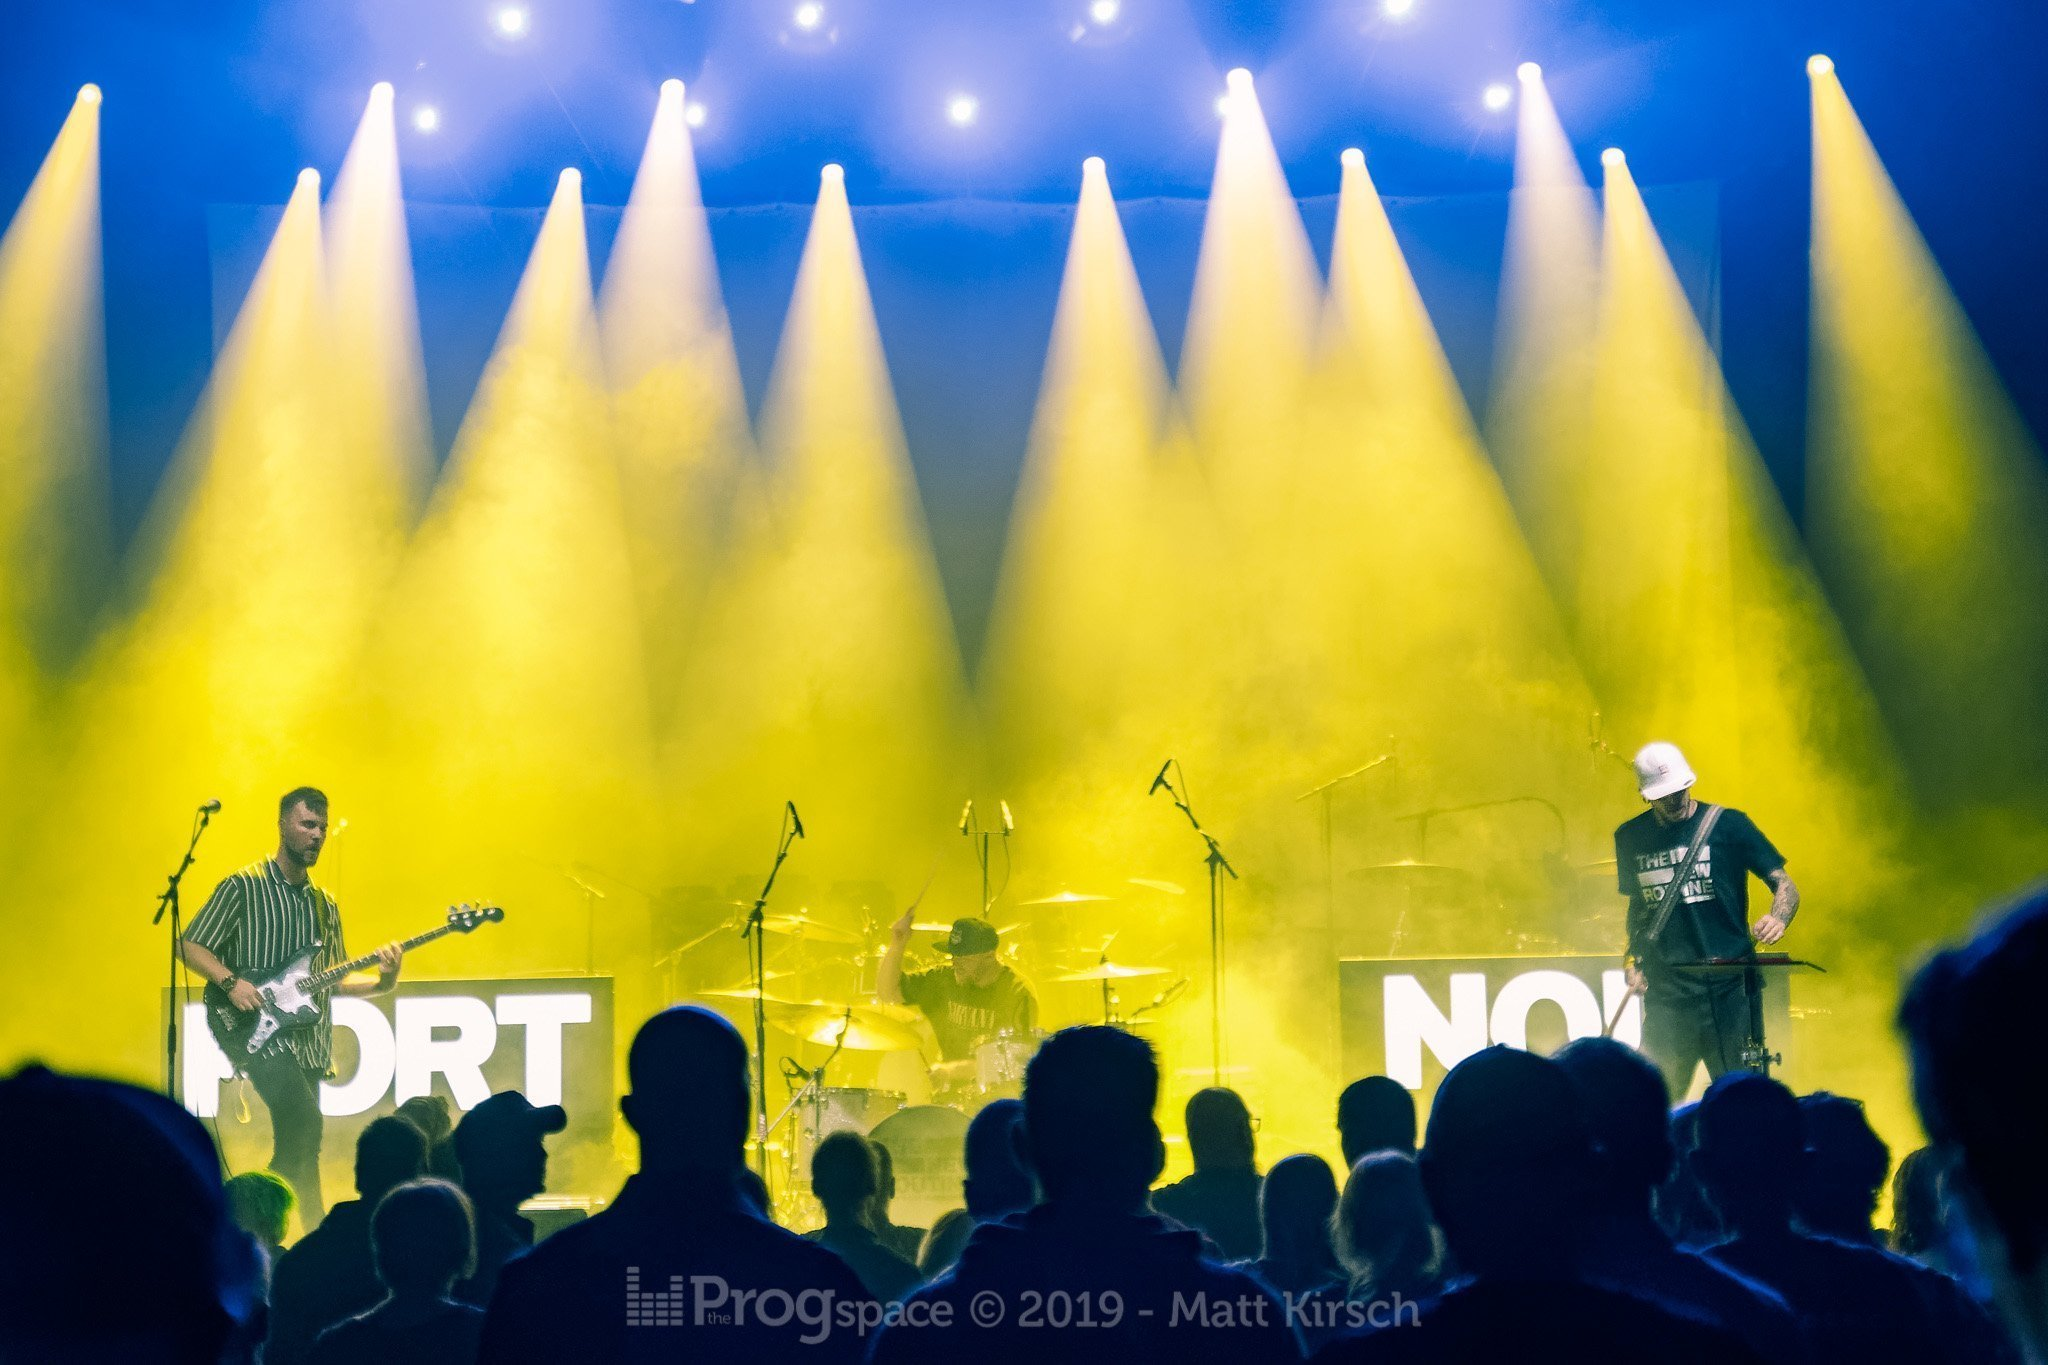 Port Noir at Hedon Zwolle, 2 November 2019